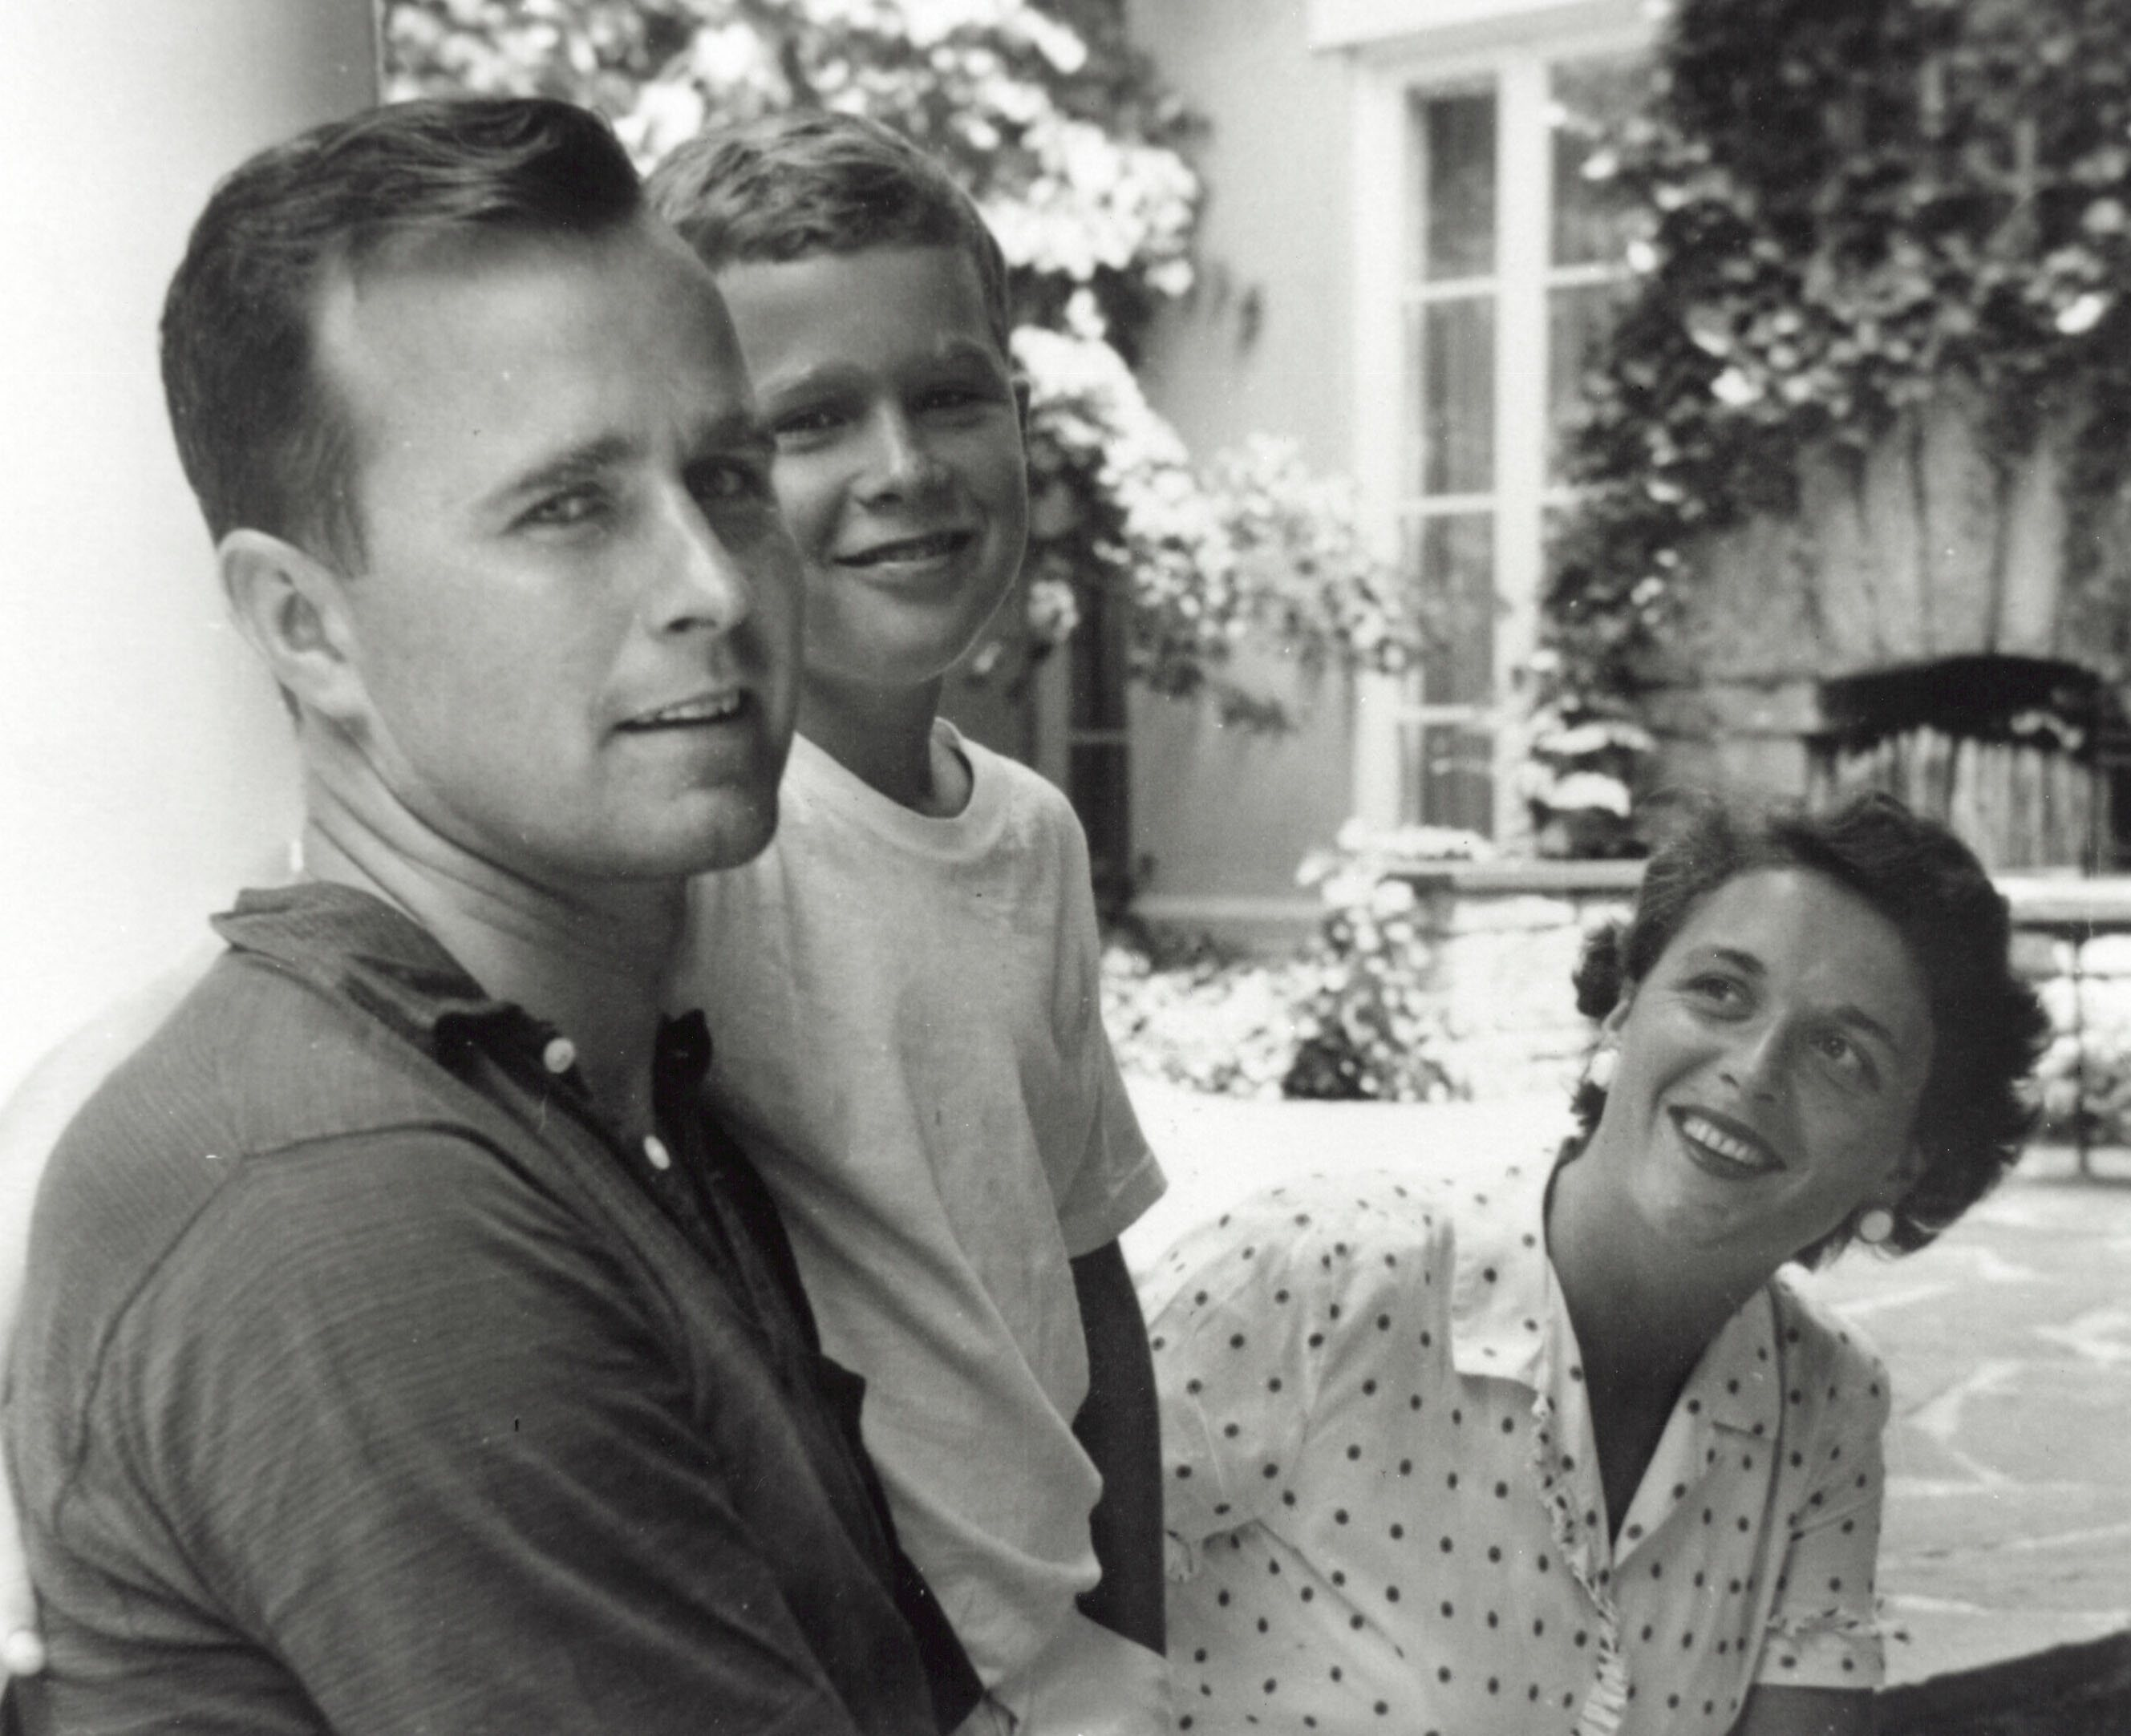 George W. Bush (C) poses with father George H.W. Bush and his mother Barbara Bush in Rye, New York, summer 1955